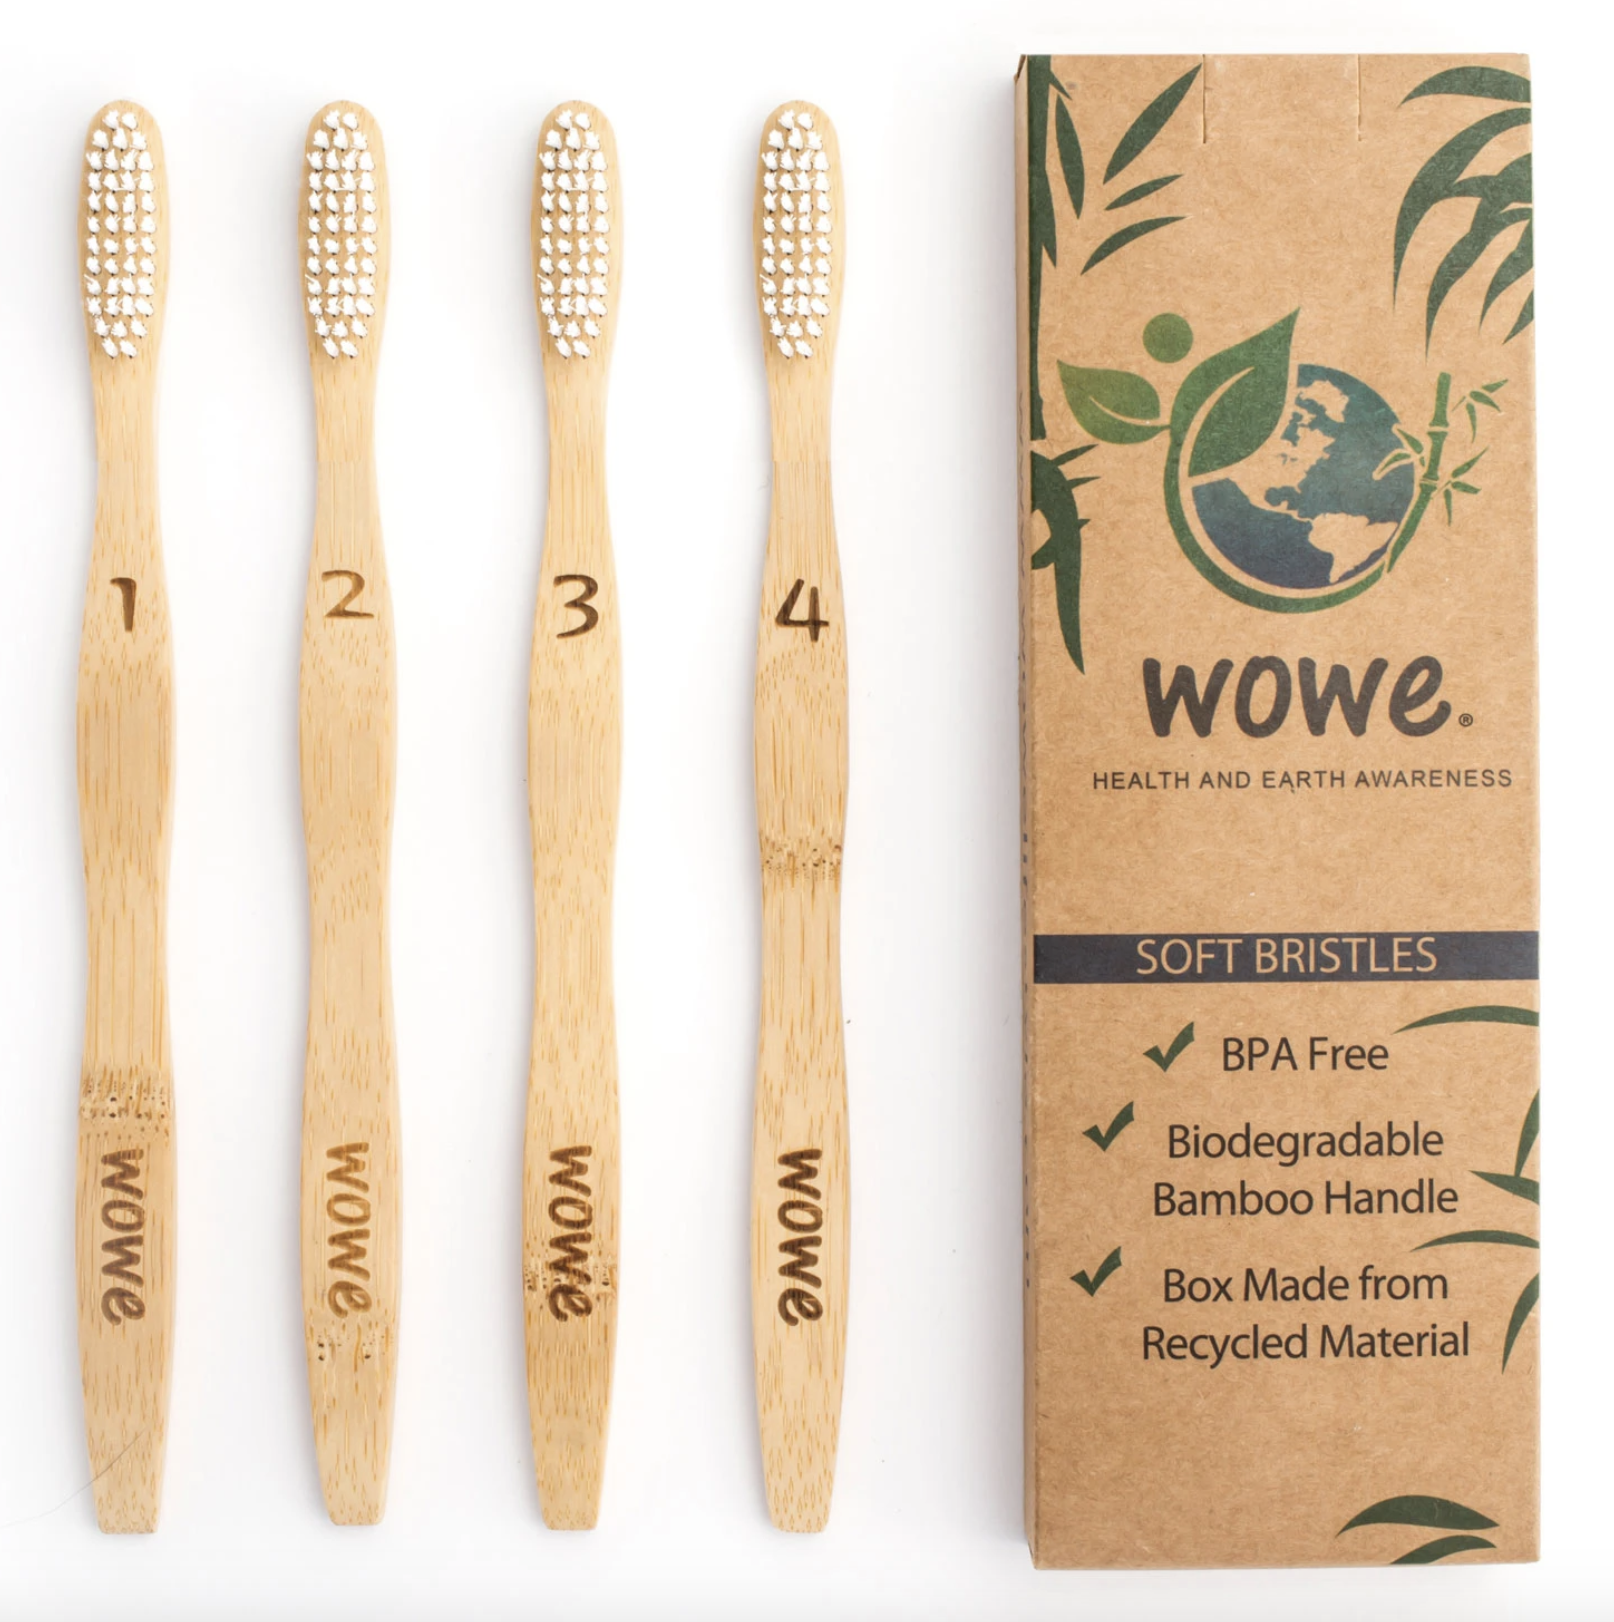 Wowe Lifestyle Natural Organic Bamboo Toothbrush (Pack of 4)